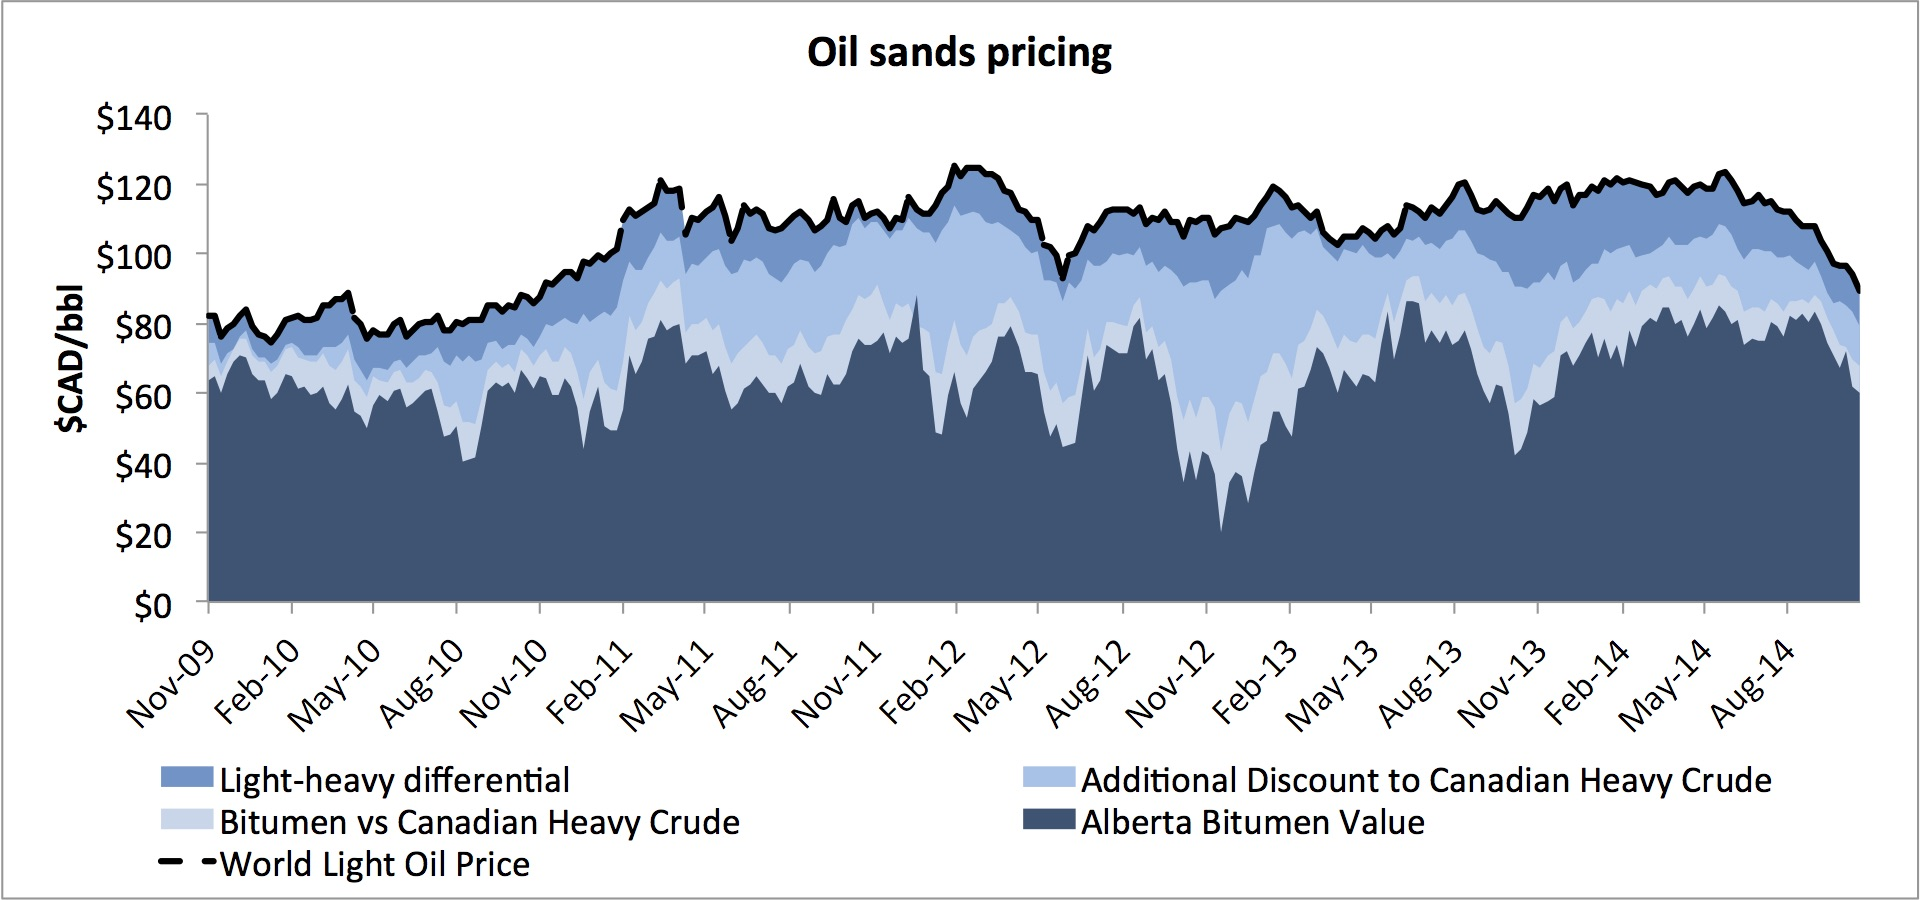 Just how much is the oil price drop hurting oil sands projects